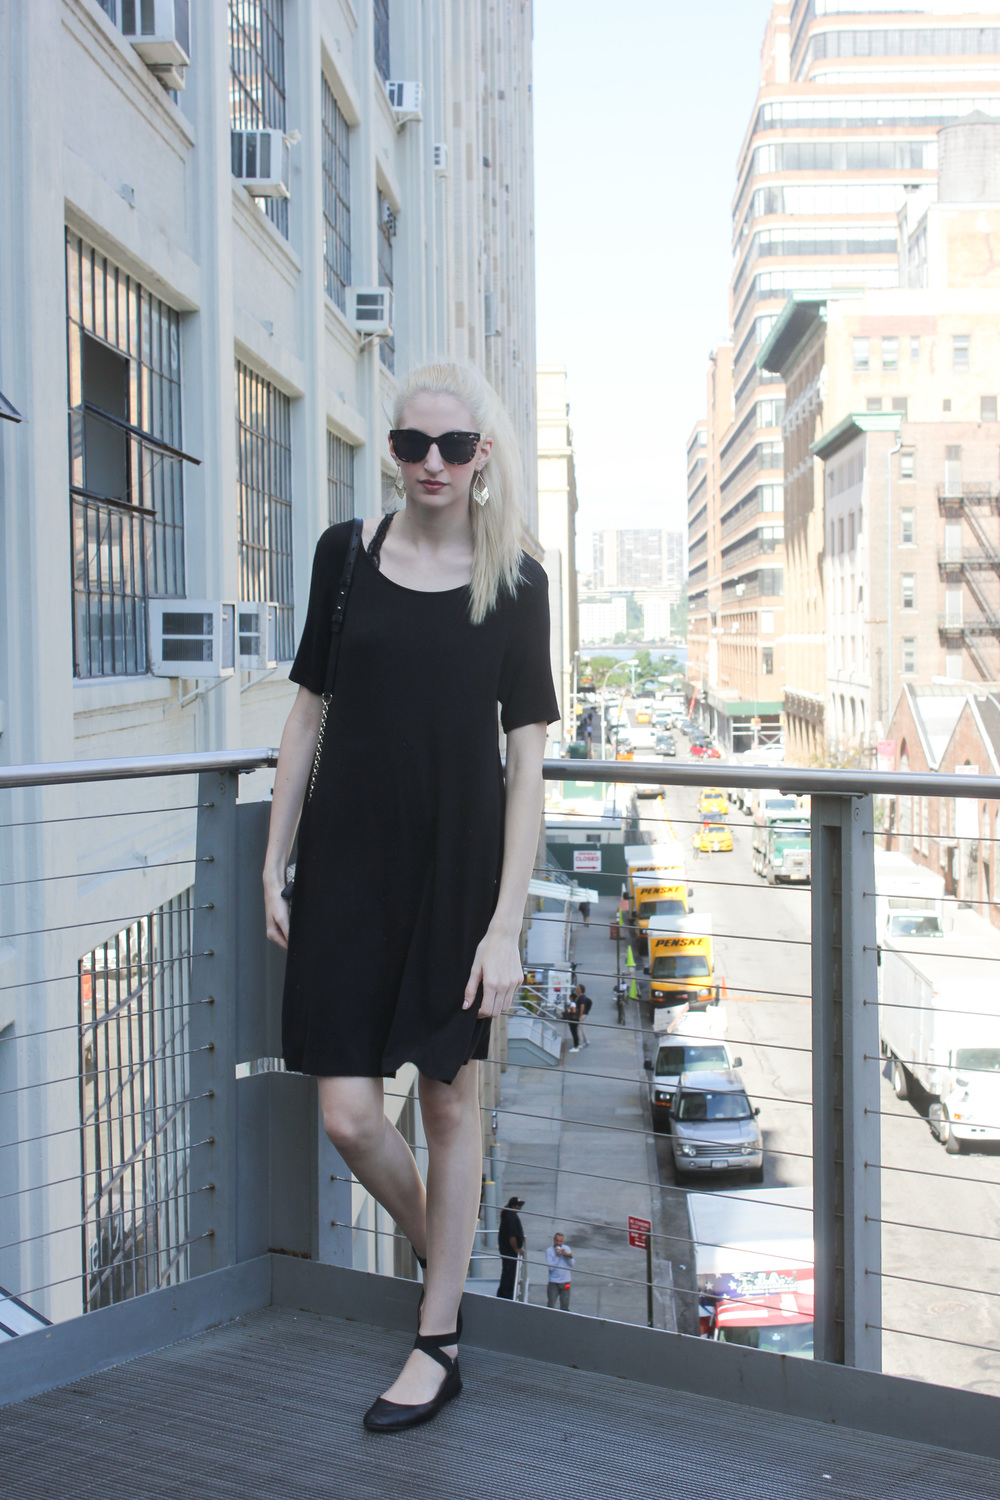 LOFT Black trapeze dress, Urban Outfitters black lace bralette, LOFT sunglasses, LOFT gold fringe earrings, Chelsea Highline, New York City, Manhattan, NYC, bottle blonde, blonde hair, NYC Blogger